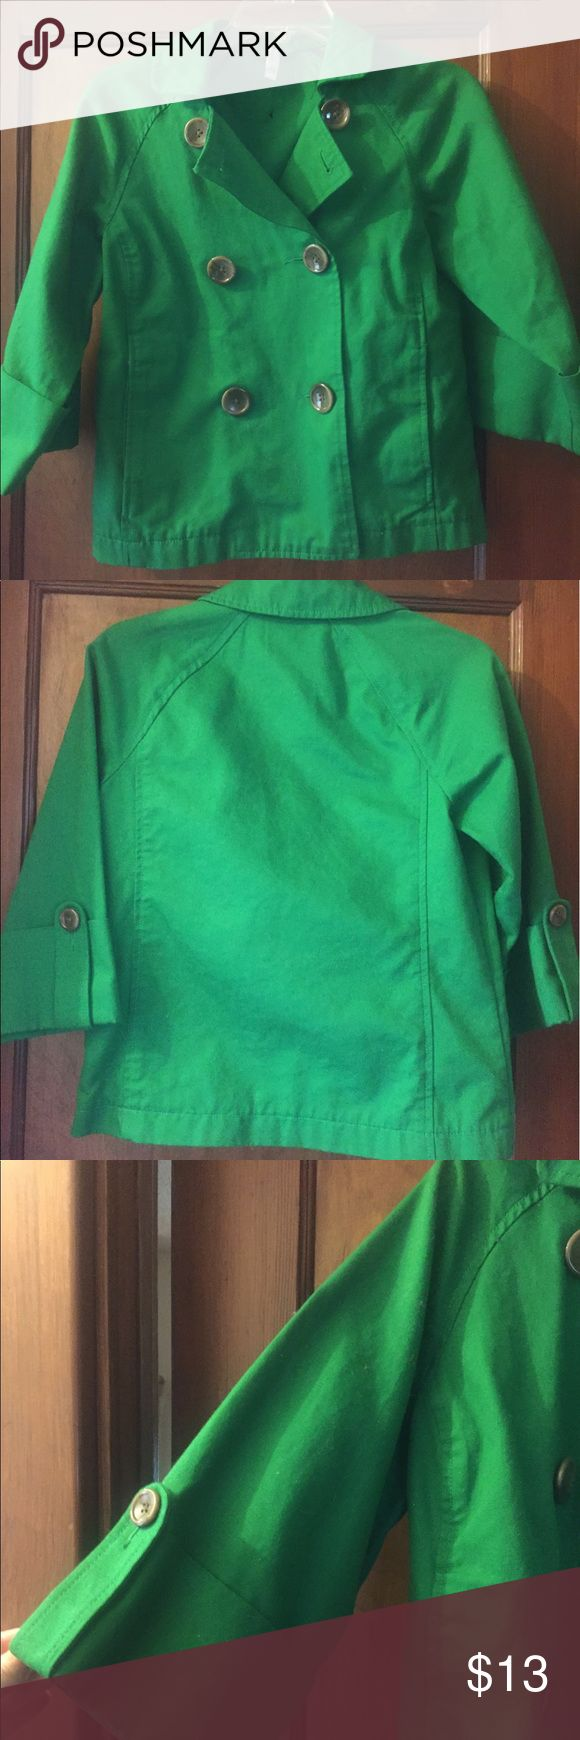 Old Navy peat coat Old Navy grass green colored pea coat. Great condition. Sz XS. SMOKE FREE HOME. Old Navy Jackets & Coats Pea Coats